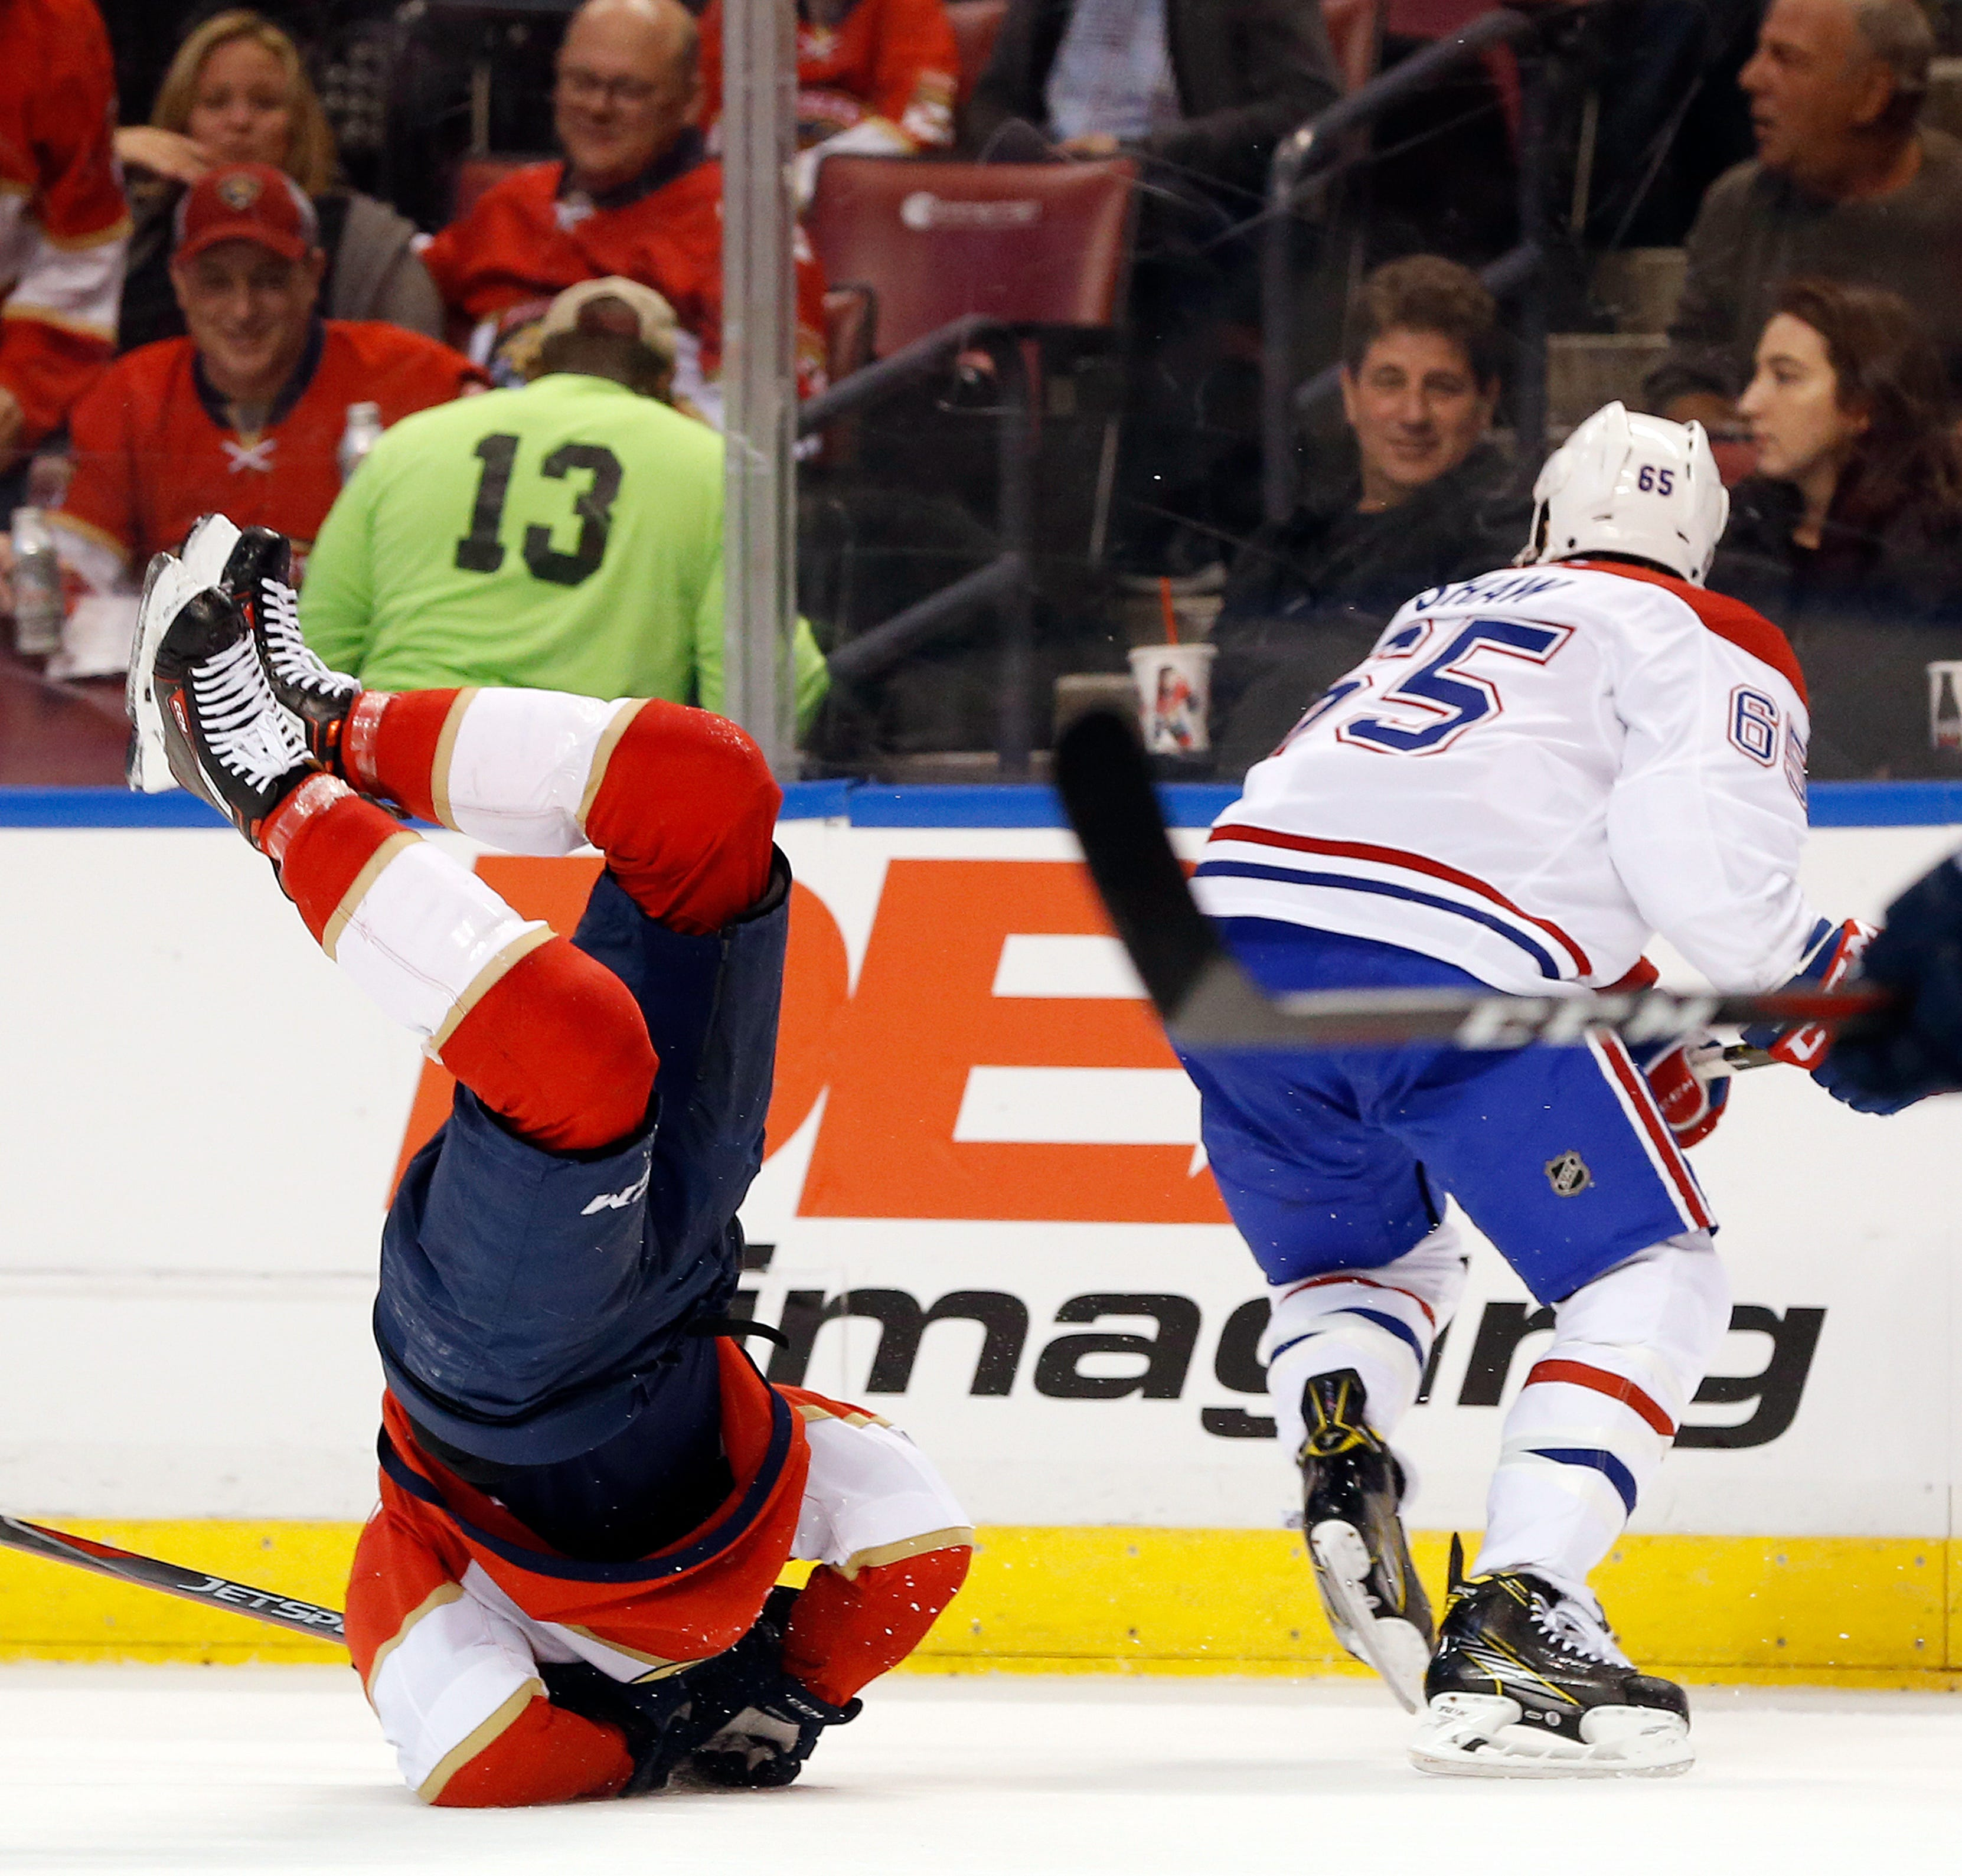 Luongo blanks Canadiens, Panthers win 7th straight at home